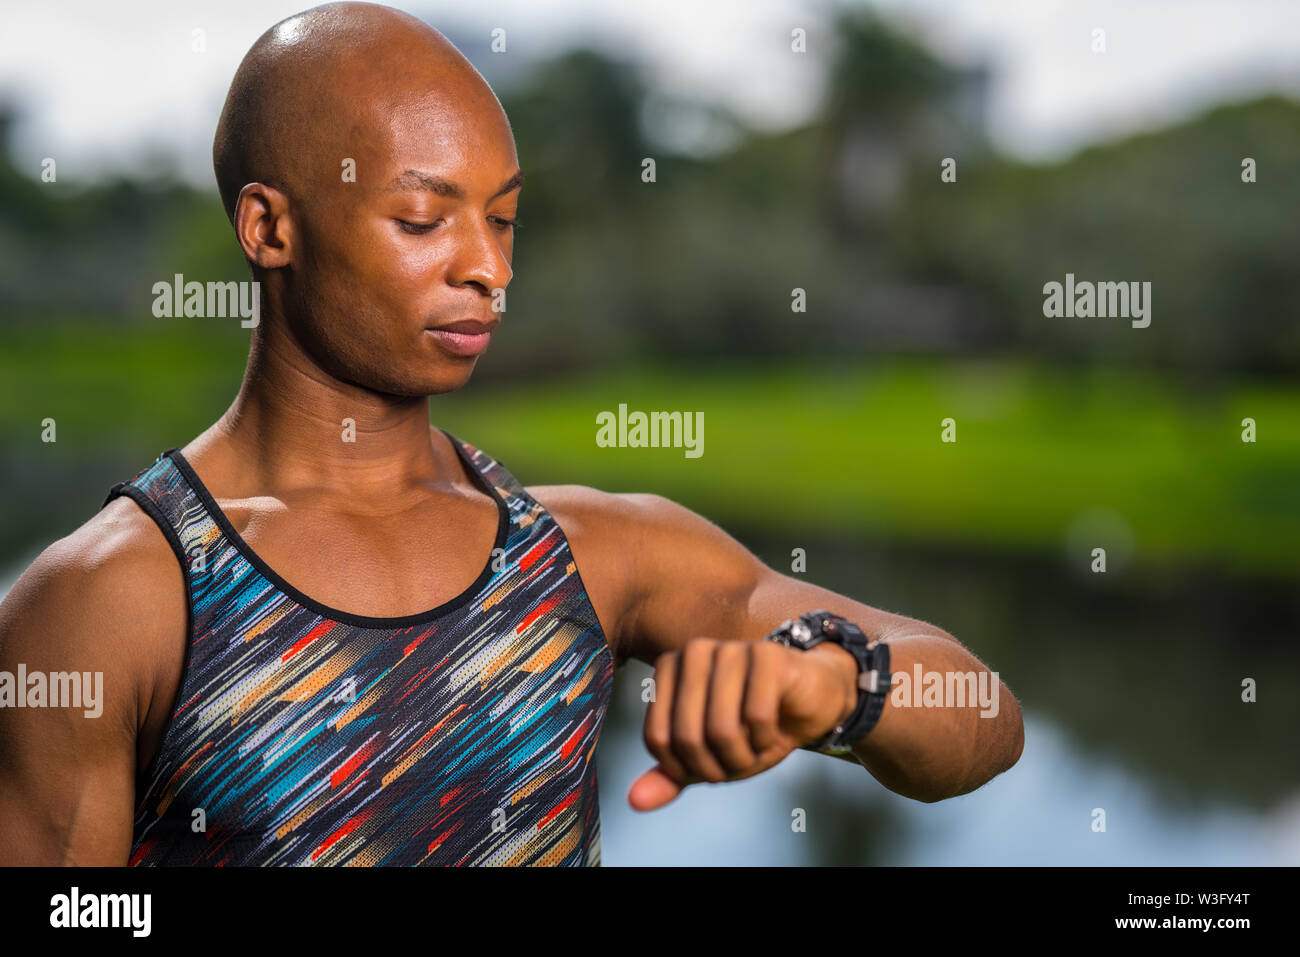 Portrait of a African American fitness model looking at his smartwatch - Stock Image